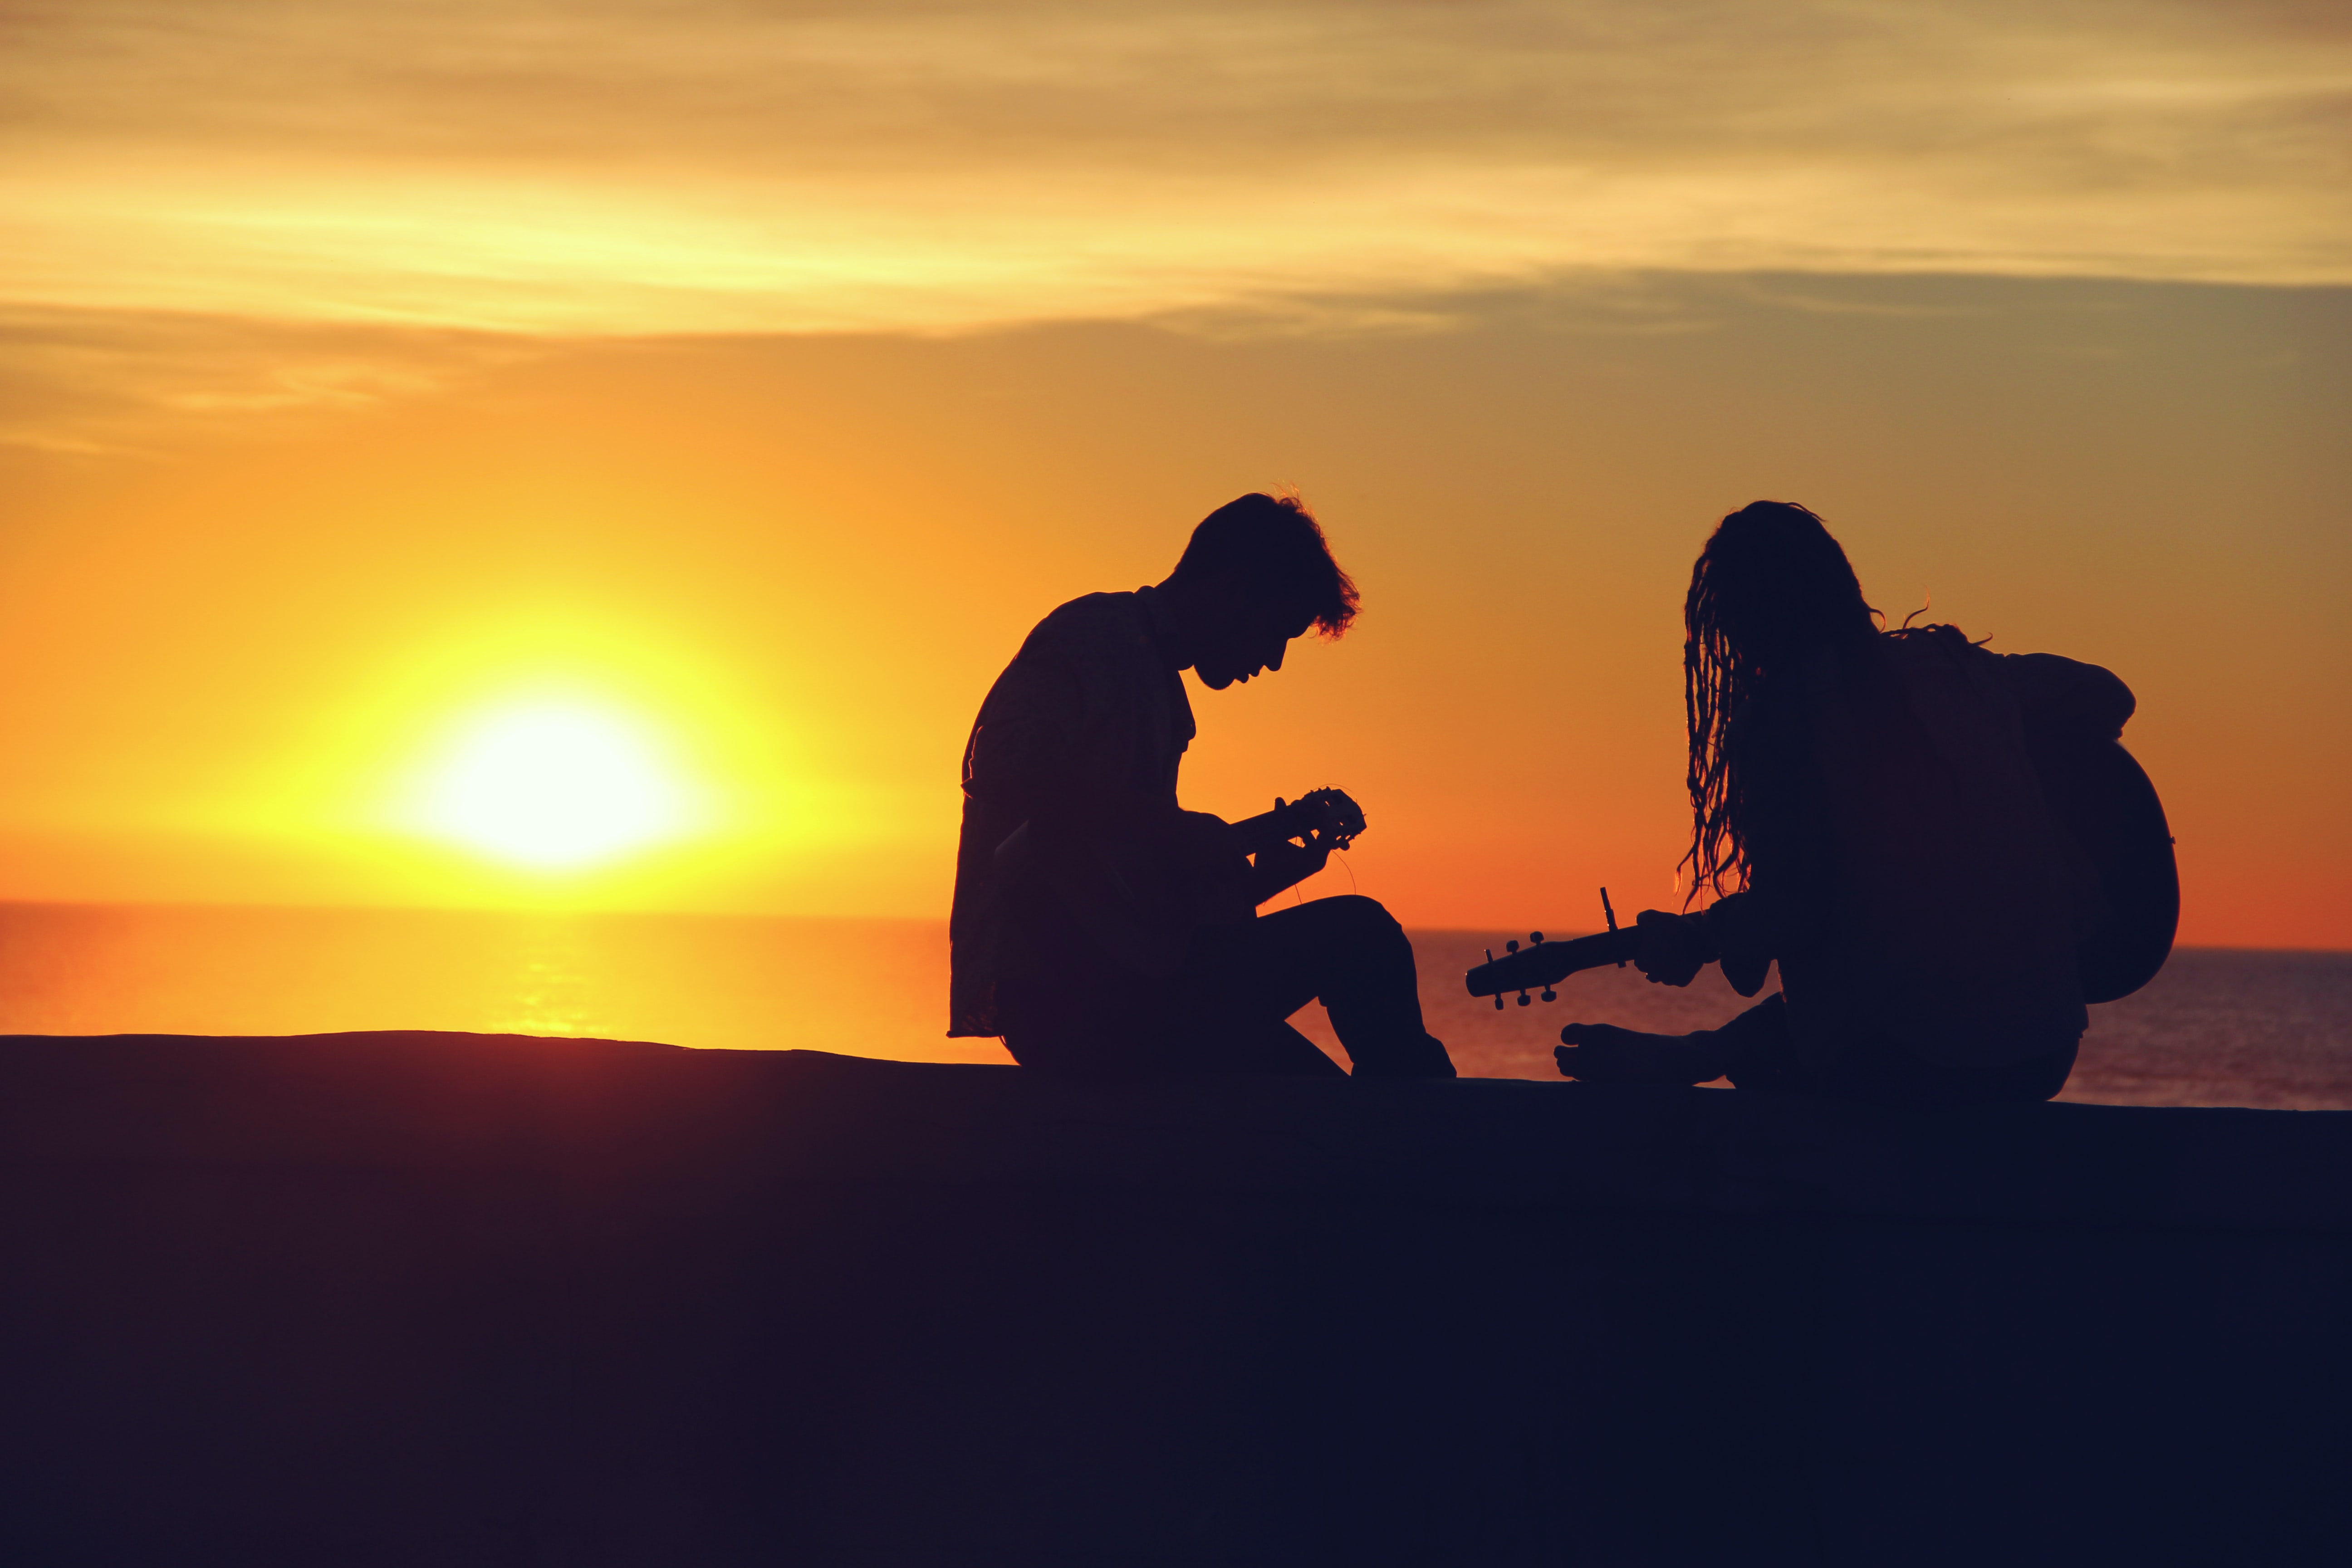 The silhouettes of a boy and a girl with guitars at the seaside against a setting sun